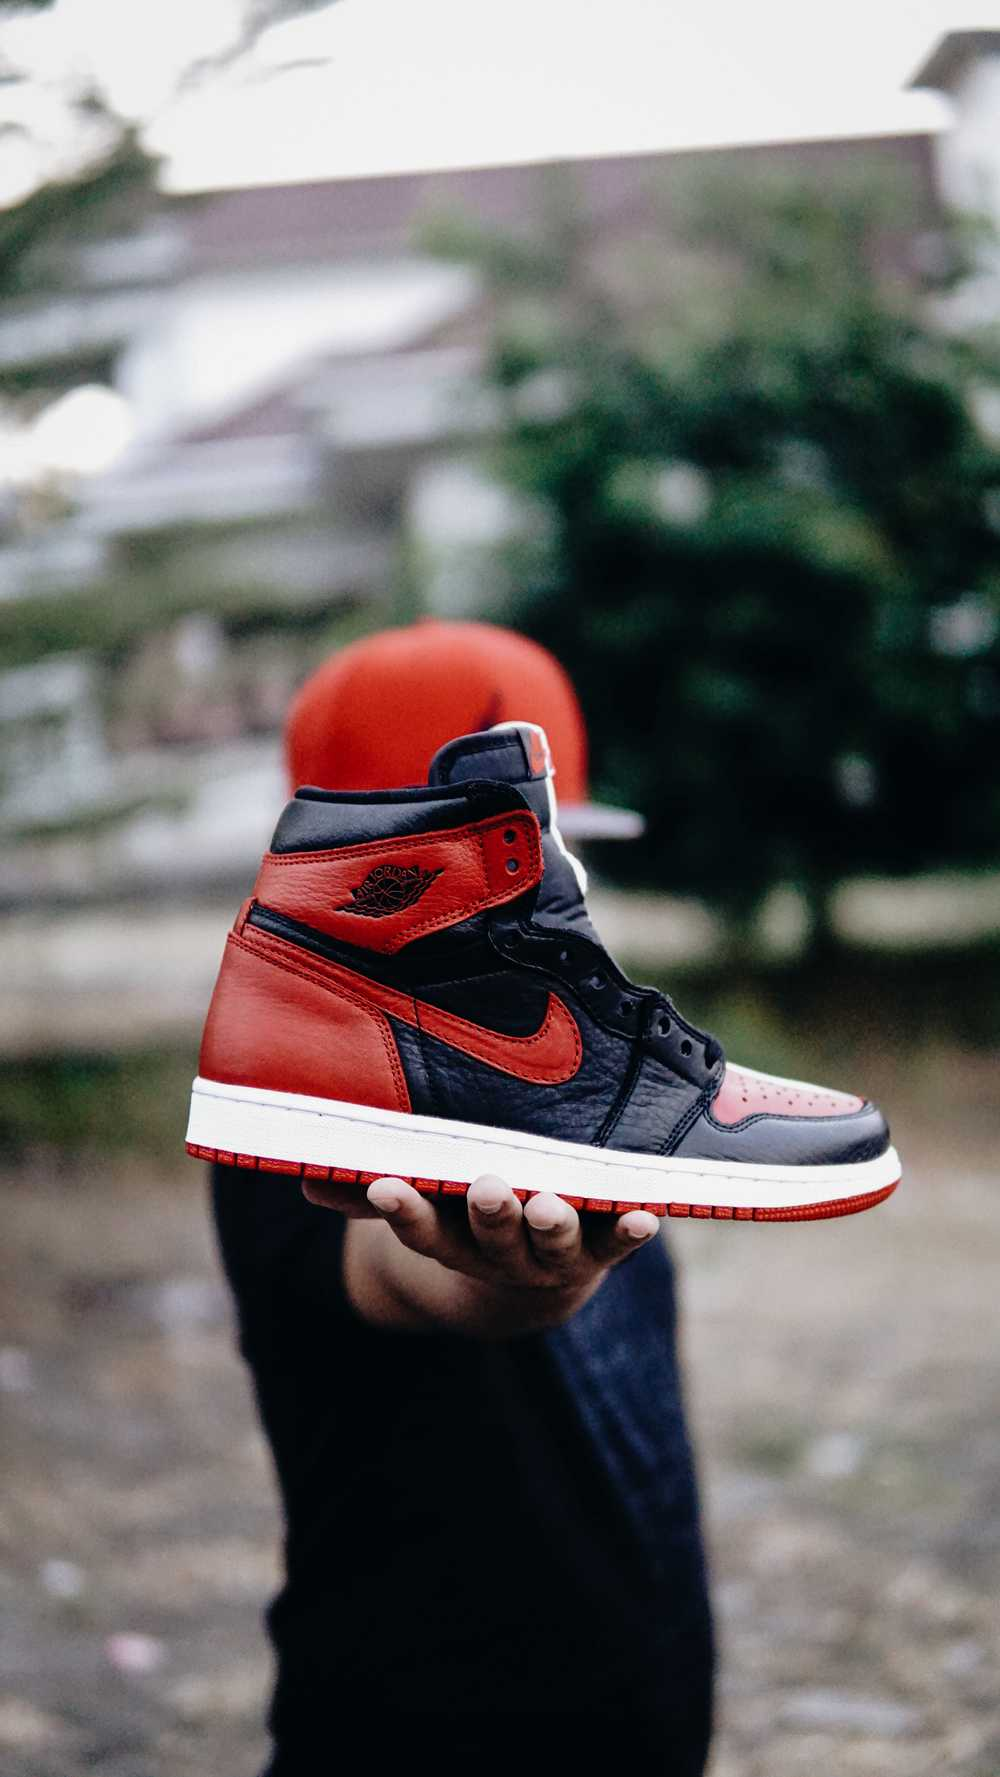 selective focus photo of person holding unpaired black and red Nike Air Jordan 1 shoe